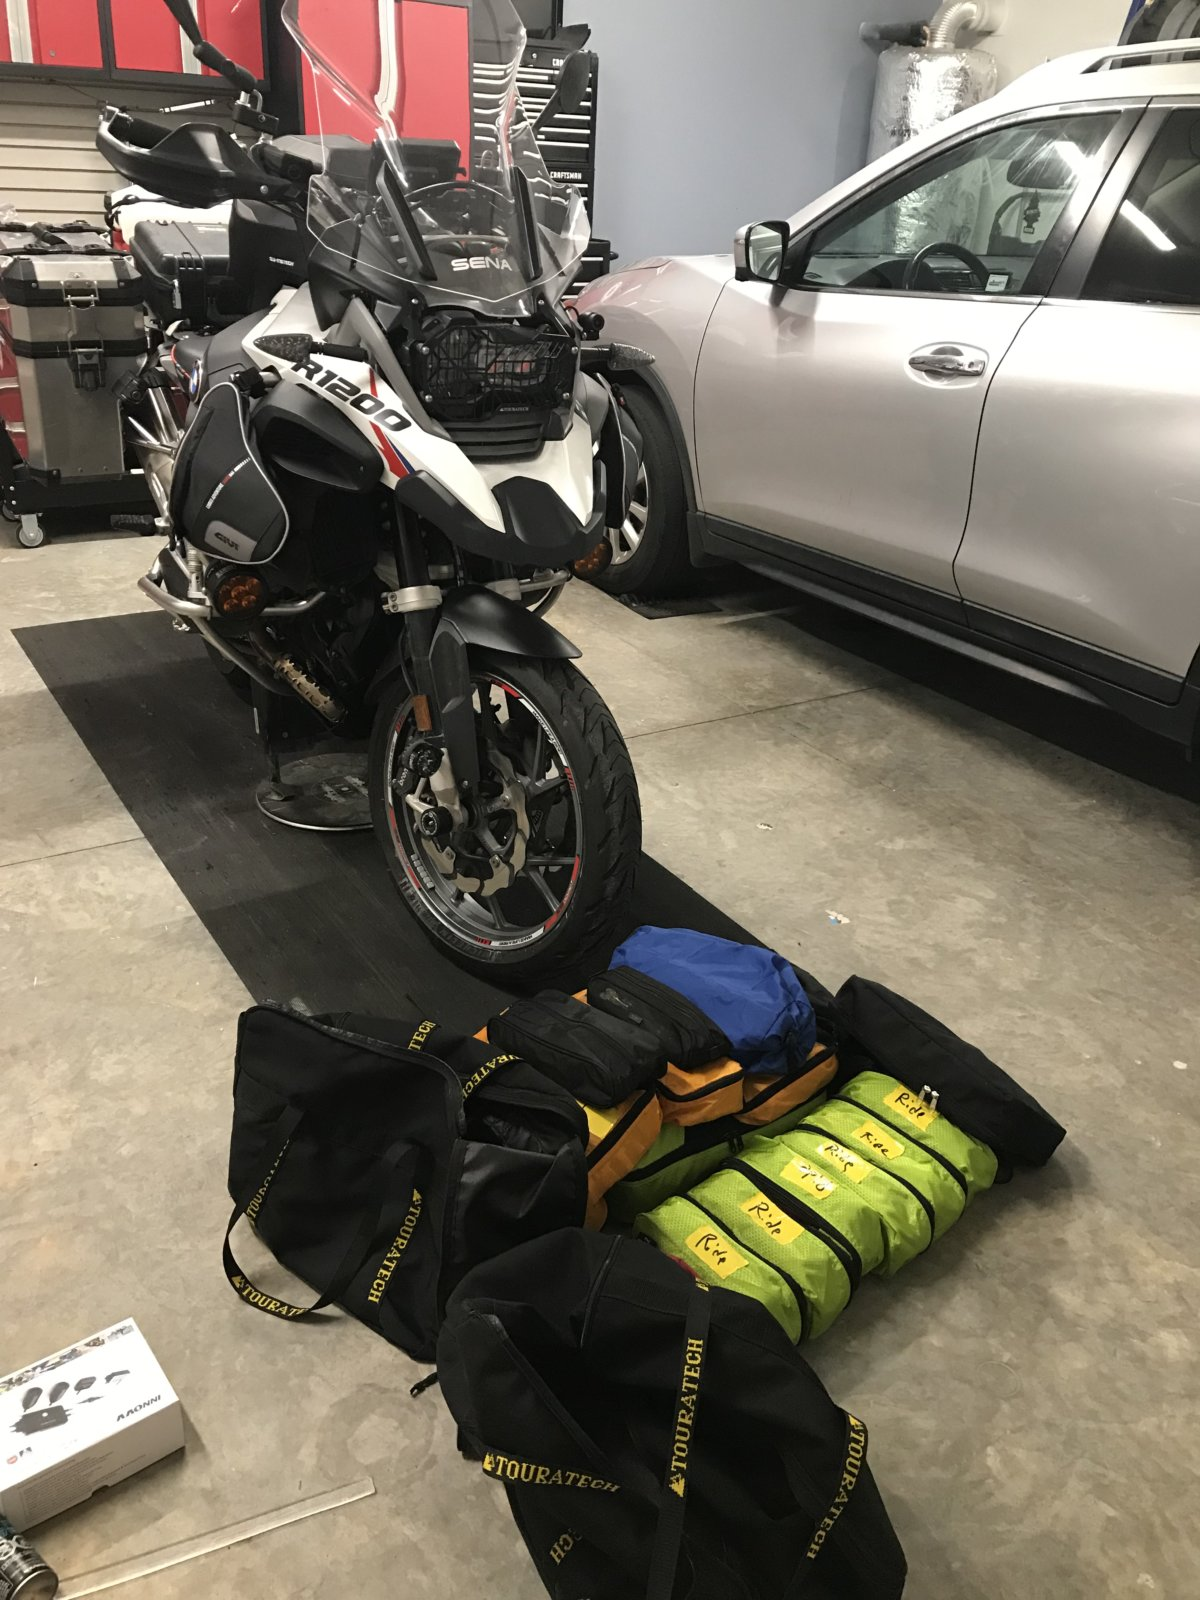 07-10 Bike With Luggage 2